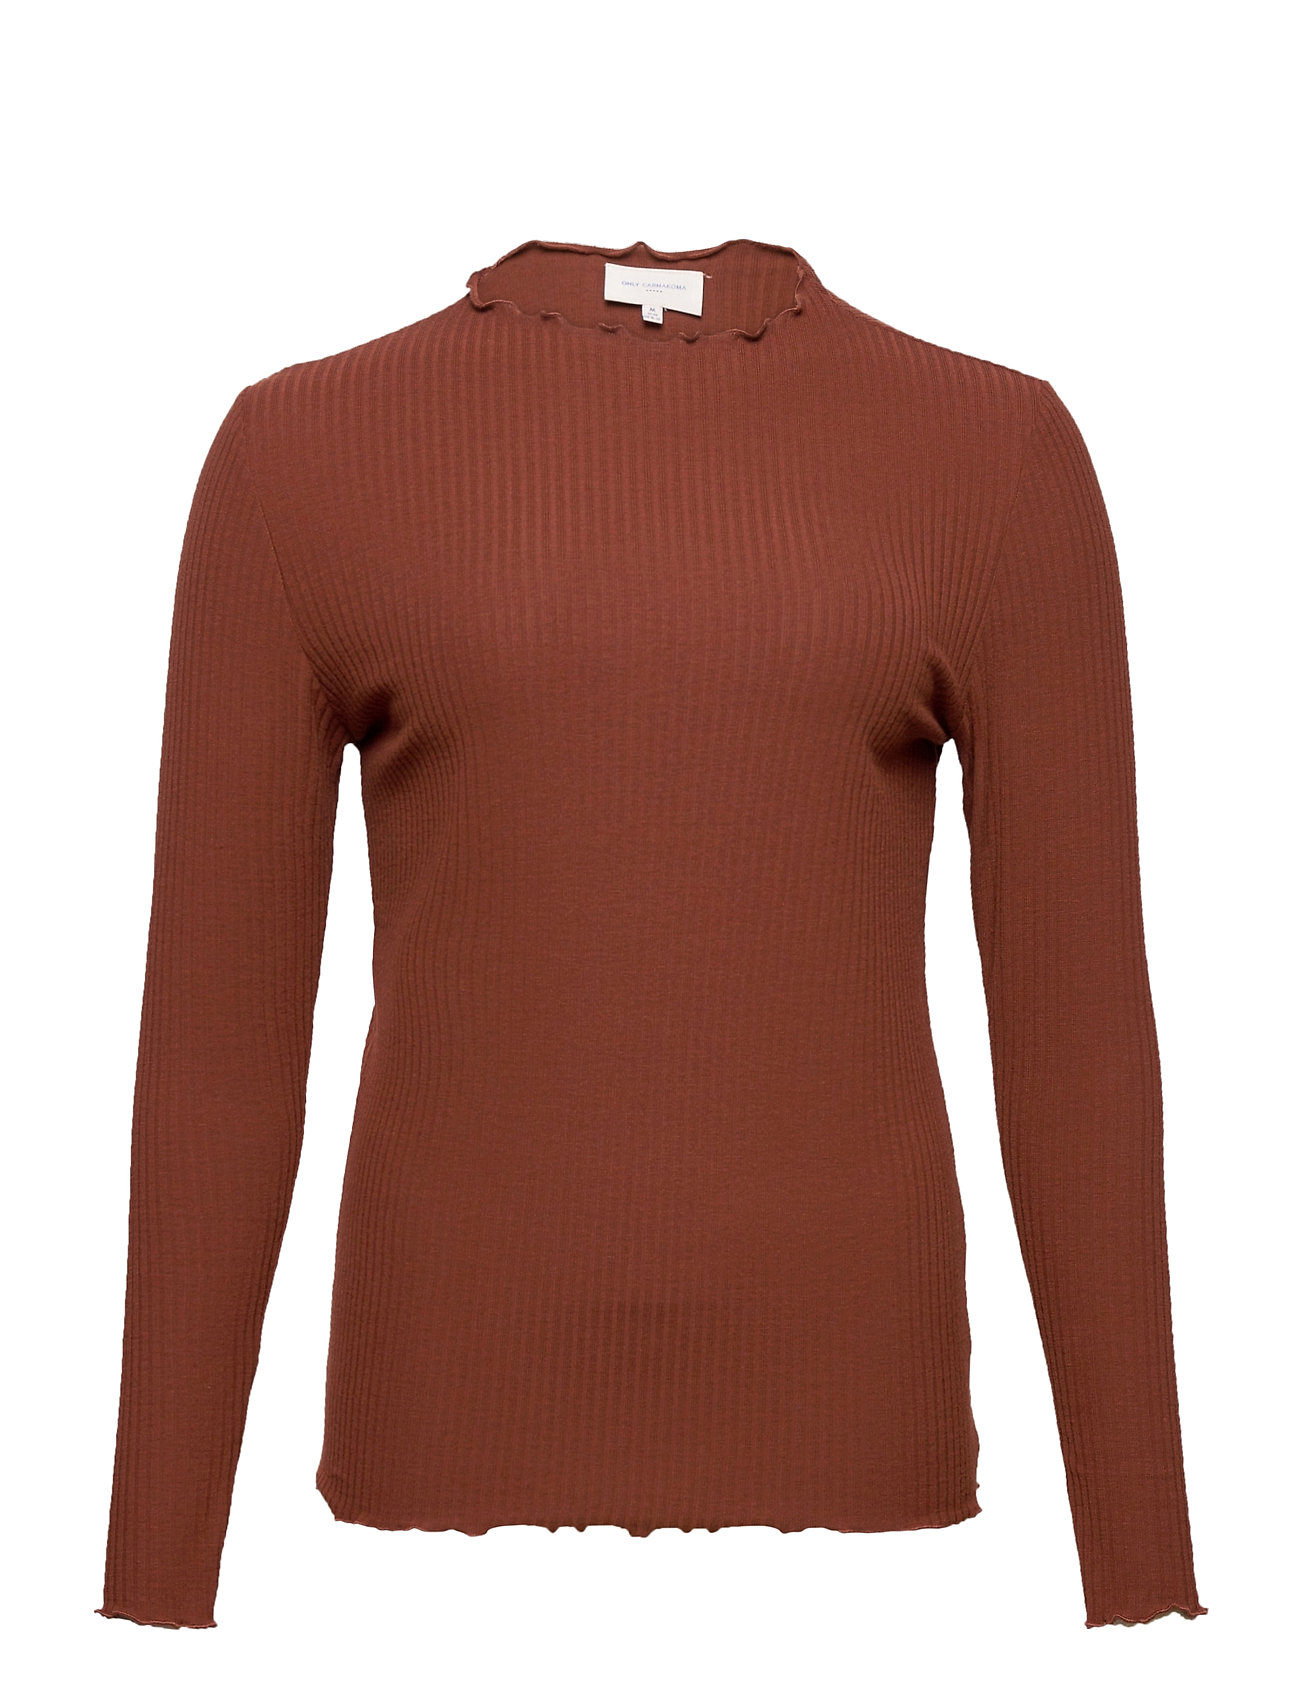 Image of Carally Ls High Neck Top Ess Langærmet T-shirt Rød ONLY Carmakoma (3456992671)